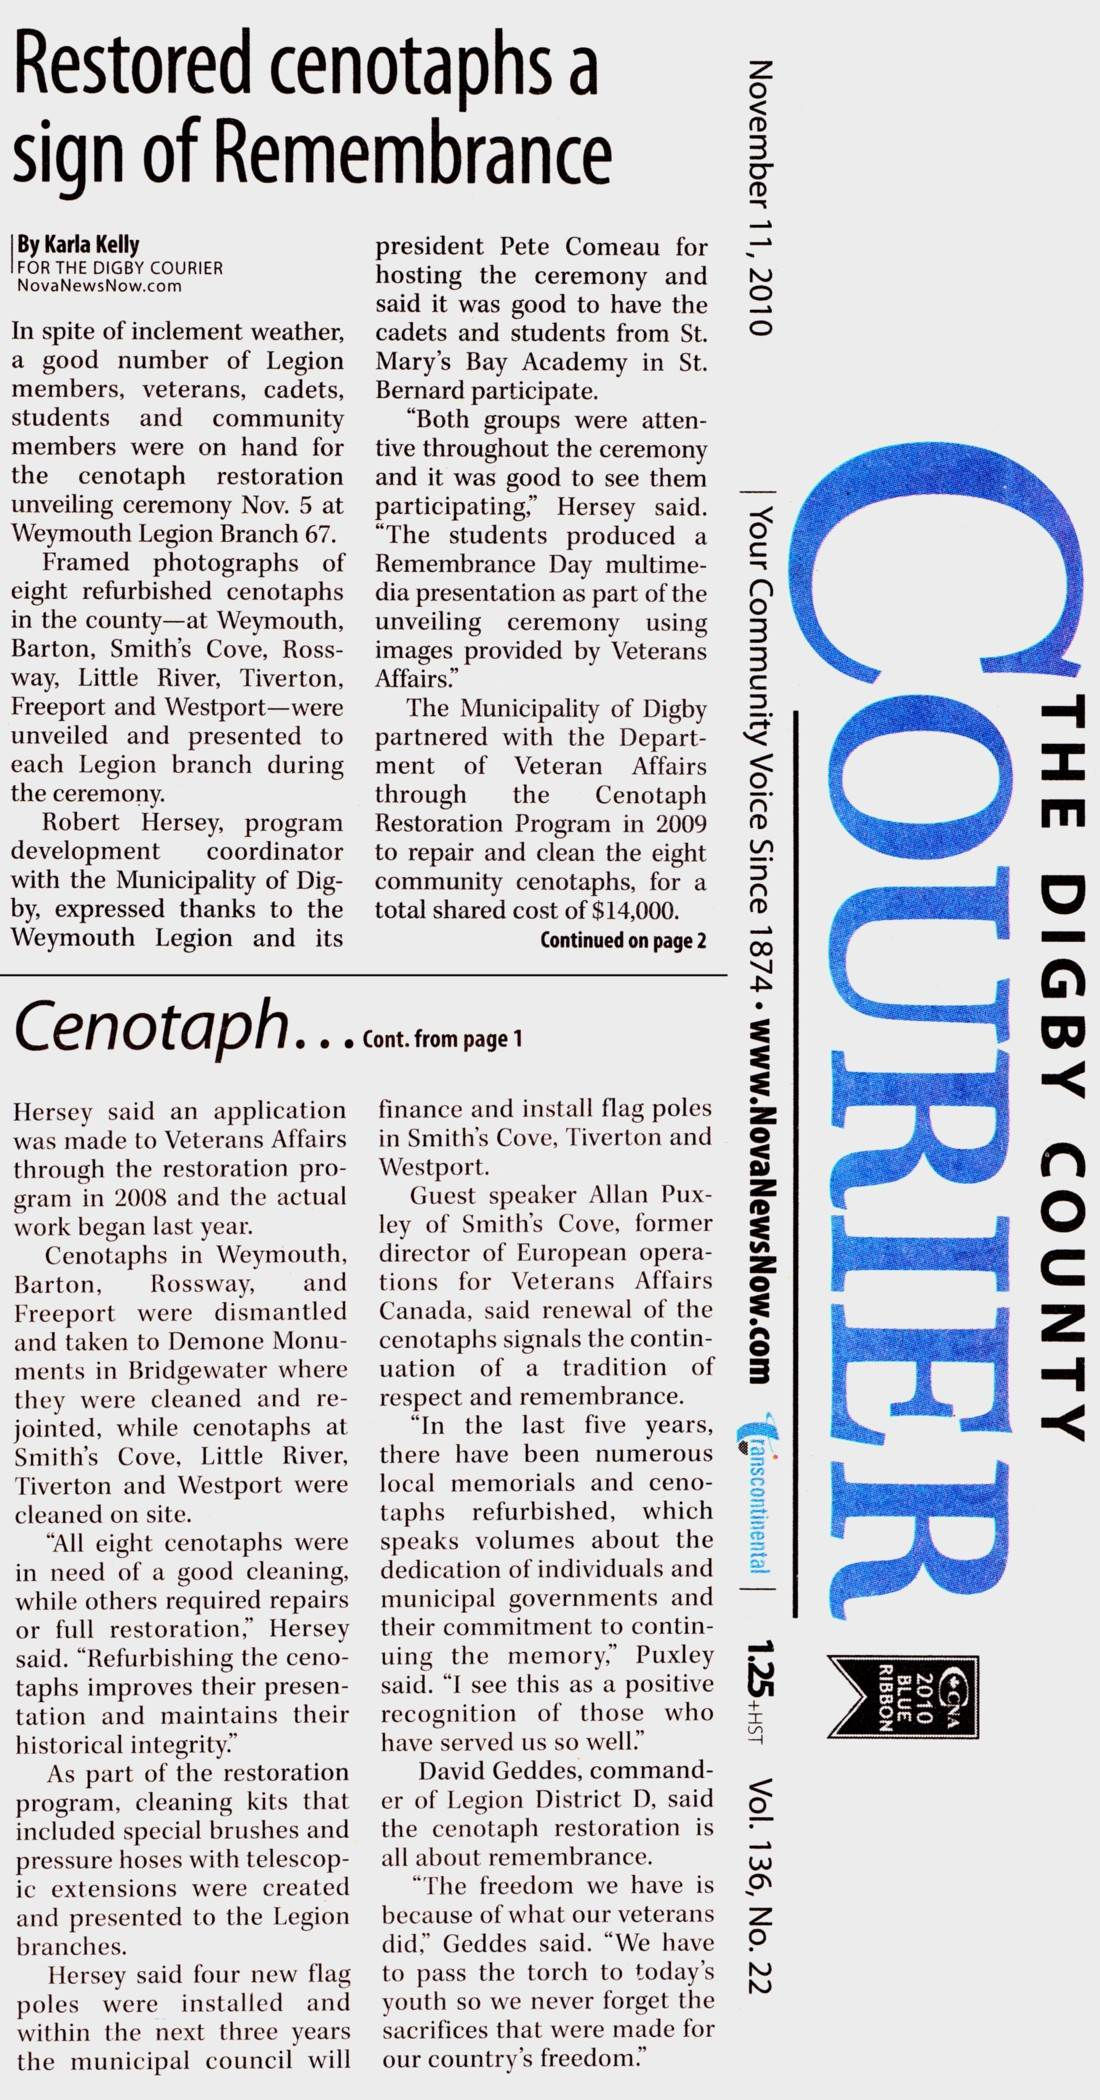 Clipping: Restored Cenotaphs a sign of Remembrance, The Digby County Courier, 11 Nov 2010